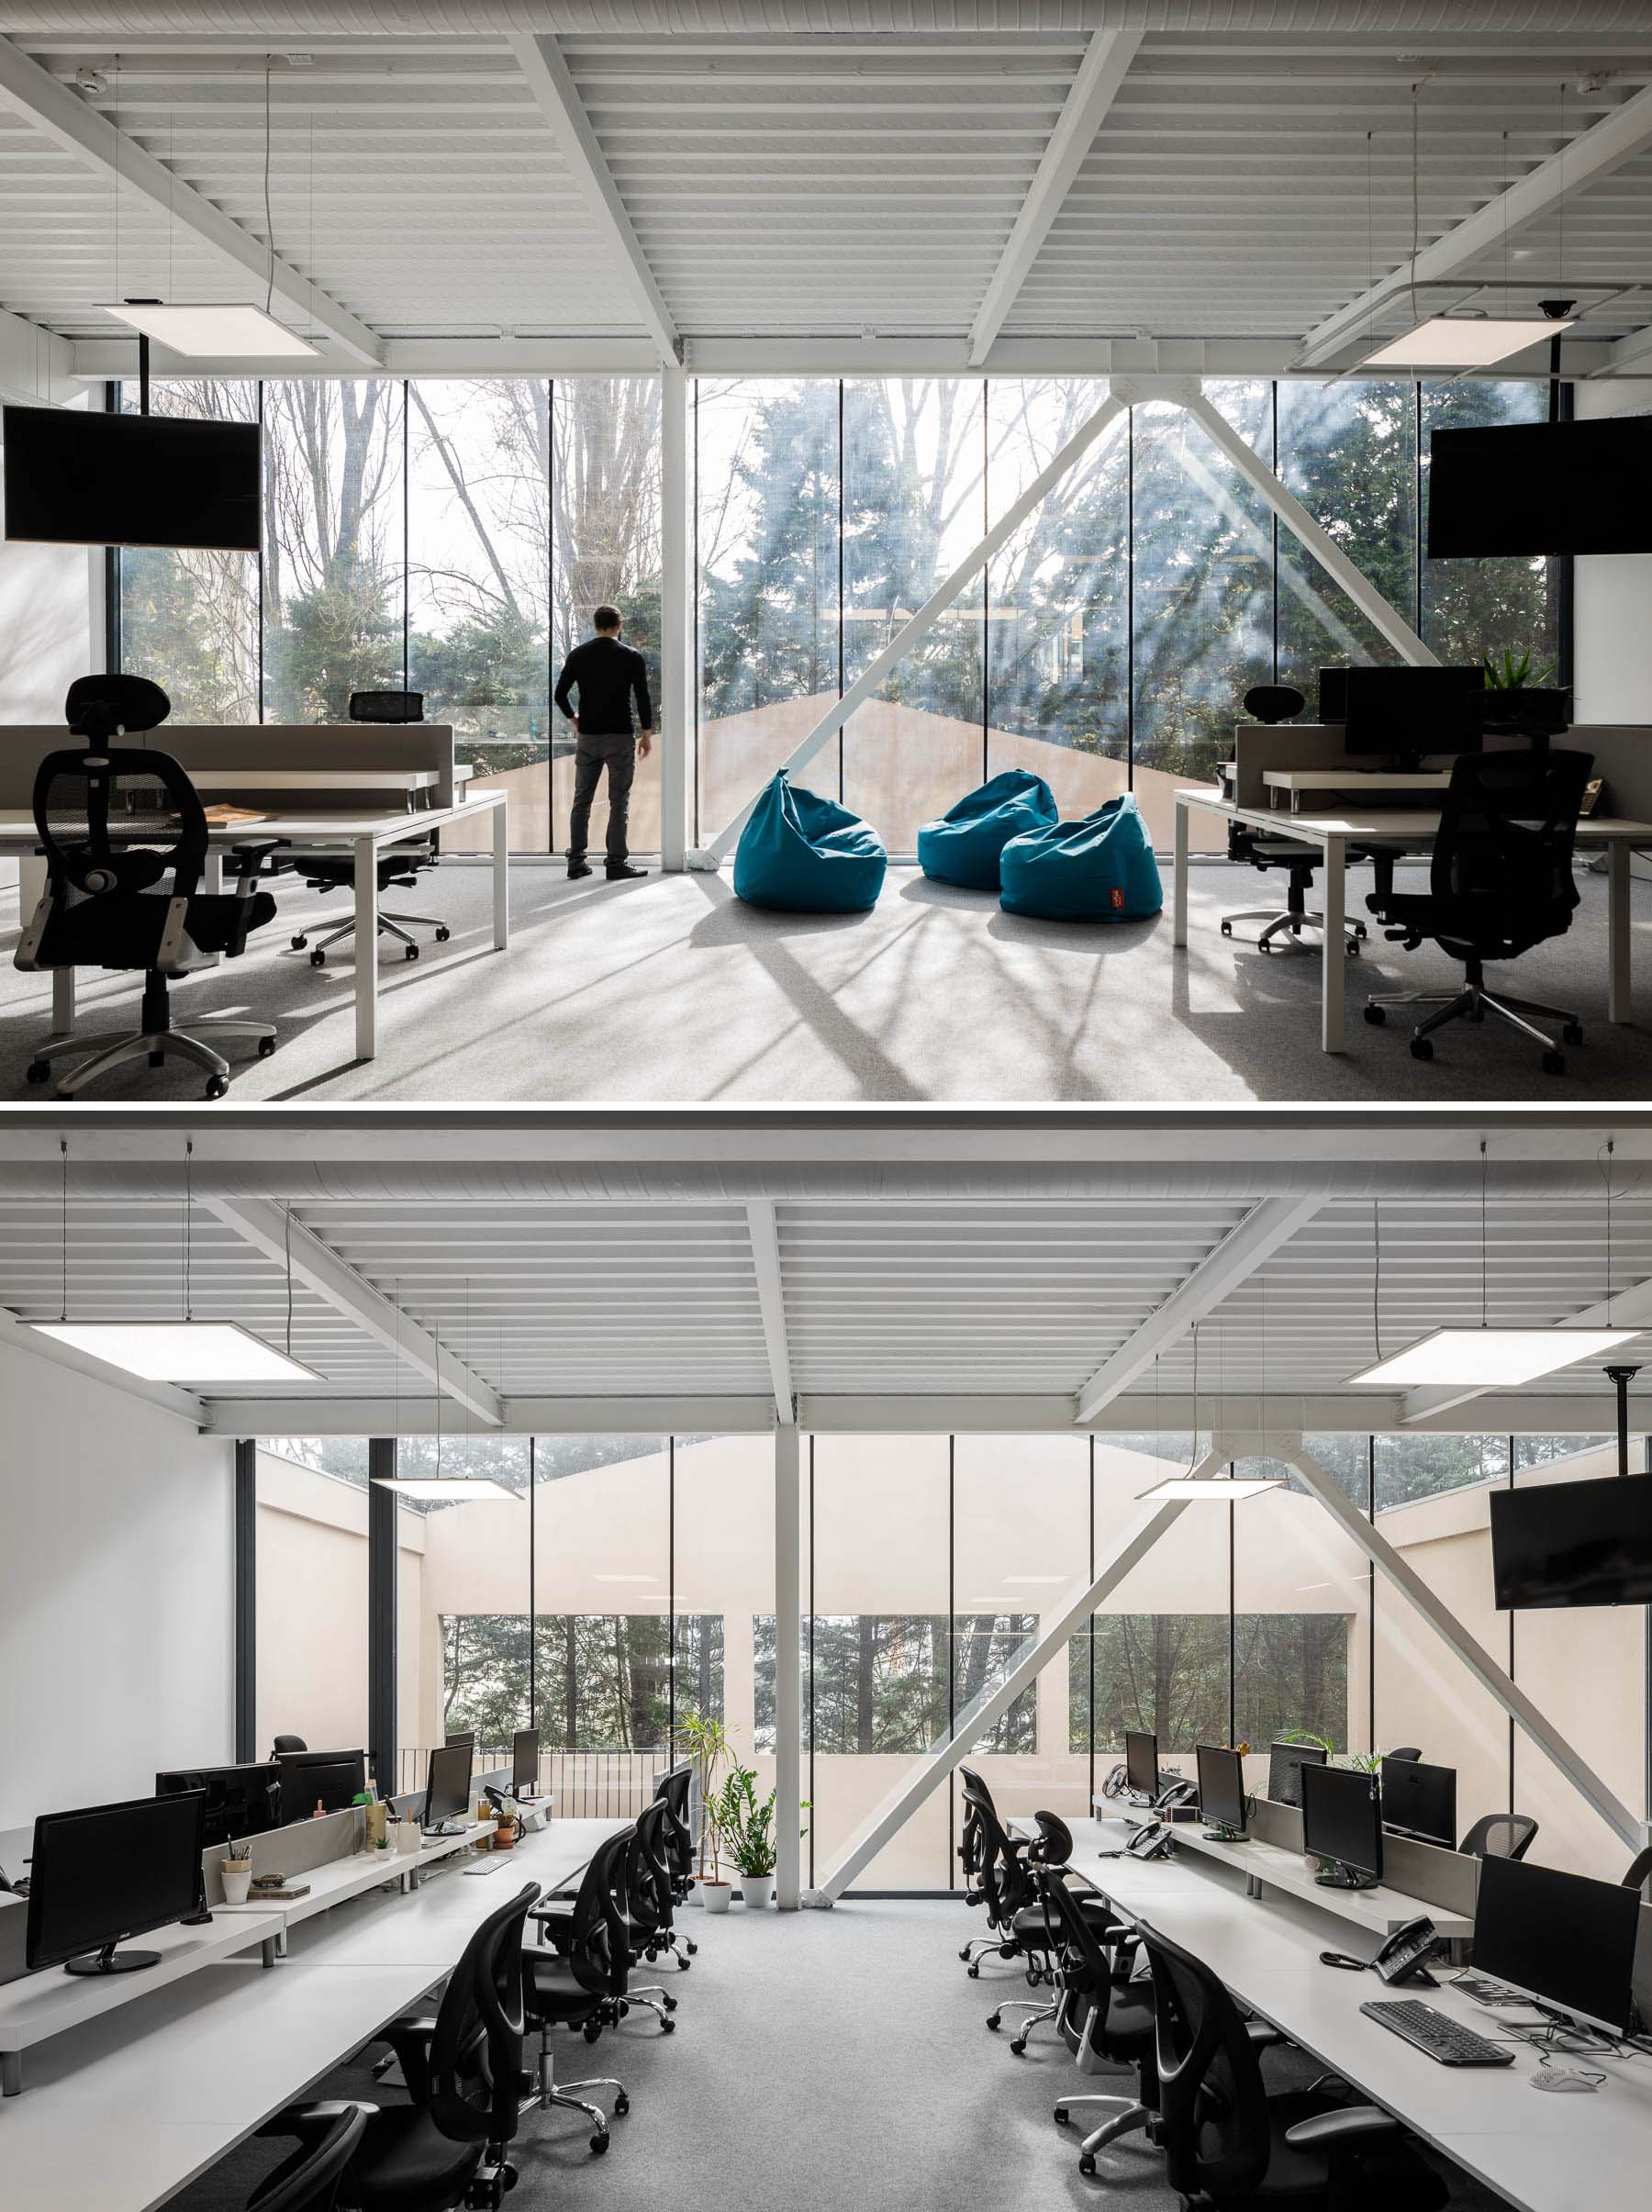 A modern office with floor-to-ceiling windows.